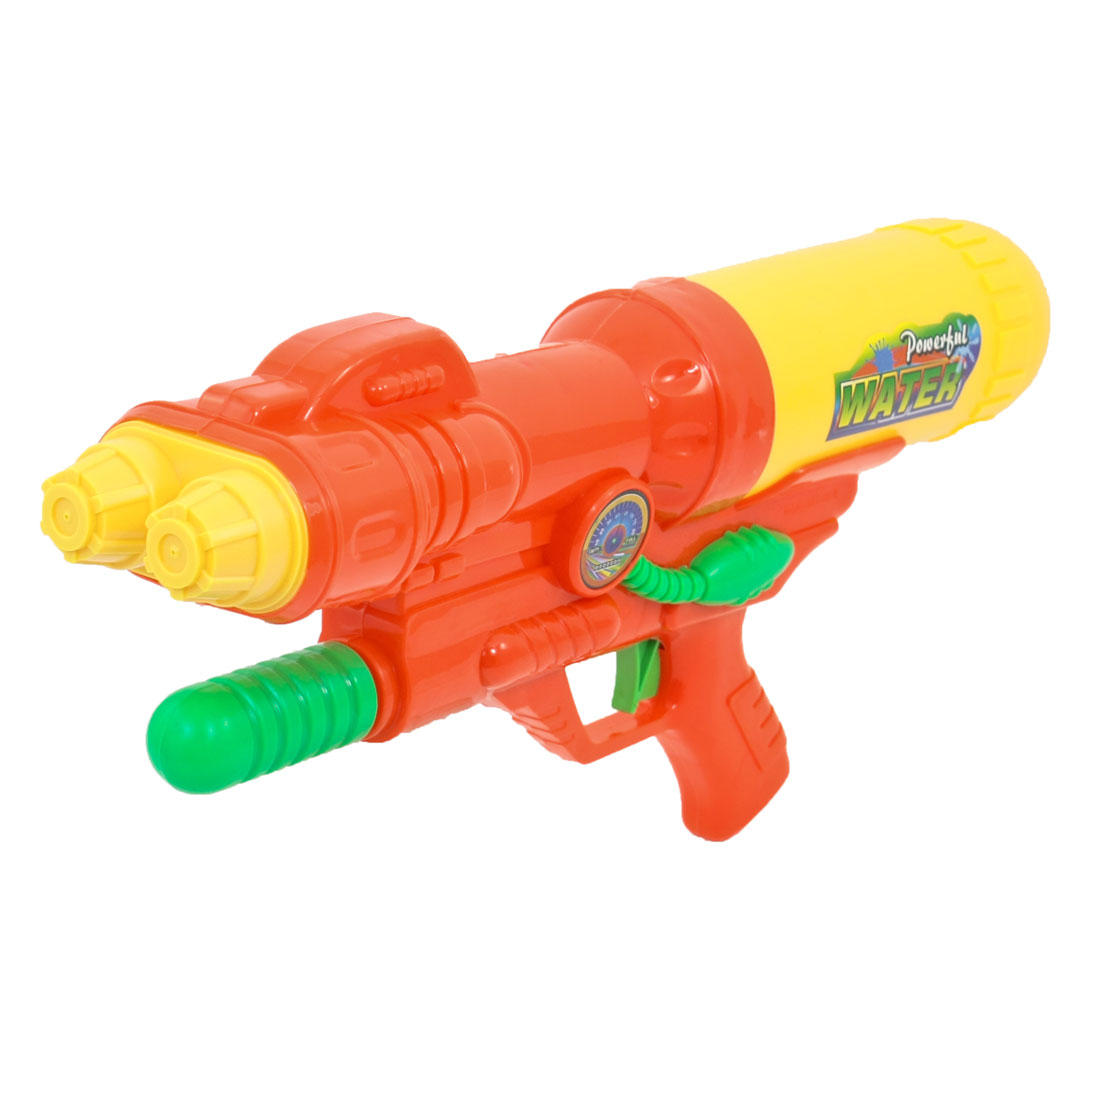 Child Orange Red Yellow Plastic Water Squirt Gun Fight Toy 40cm Long